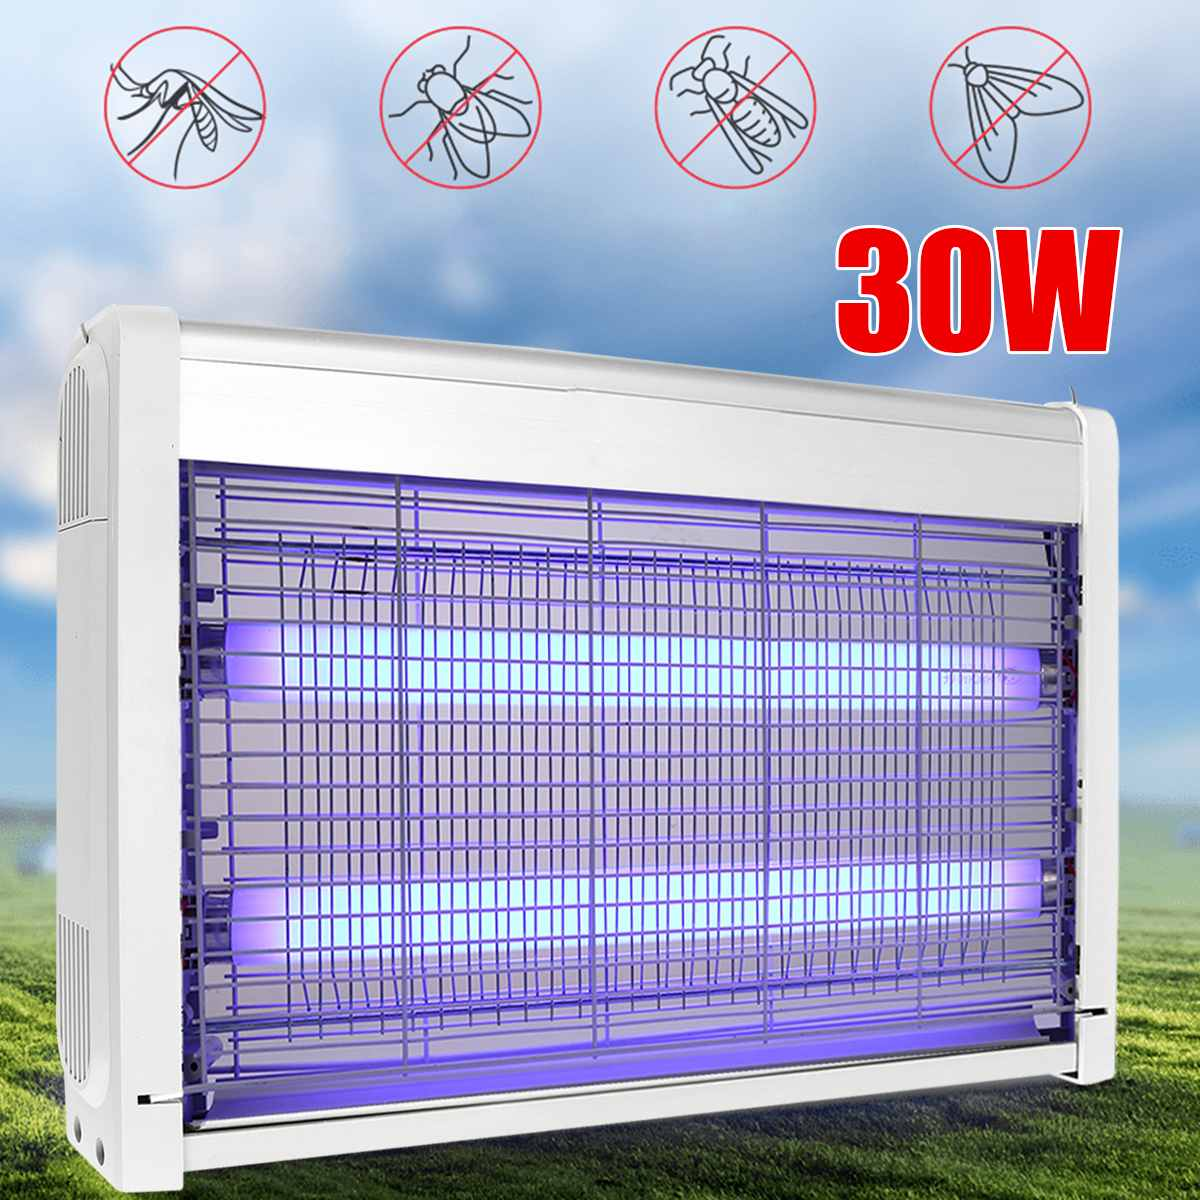 30W 220V Electric UV Insect Killer Mosquito Insect Fly Bug Insect Zapper Trap Catcher Home Garden Outdoor LED Lamps30W 220V Electric UV Insect Killer Mosquito Insect Fly Bug Insect Zapper Trap Catcher Home Garden Outdoor LED Lamps